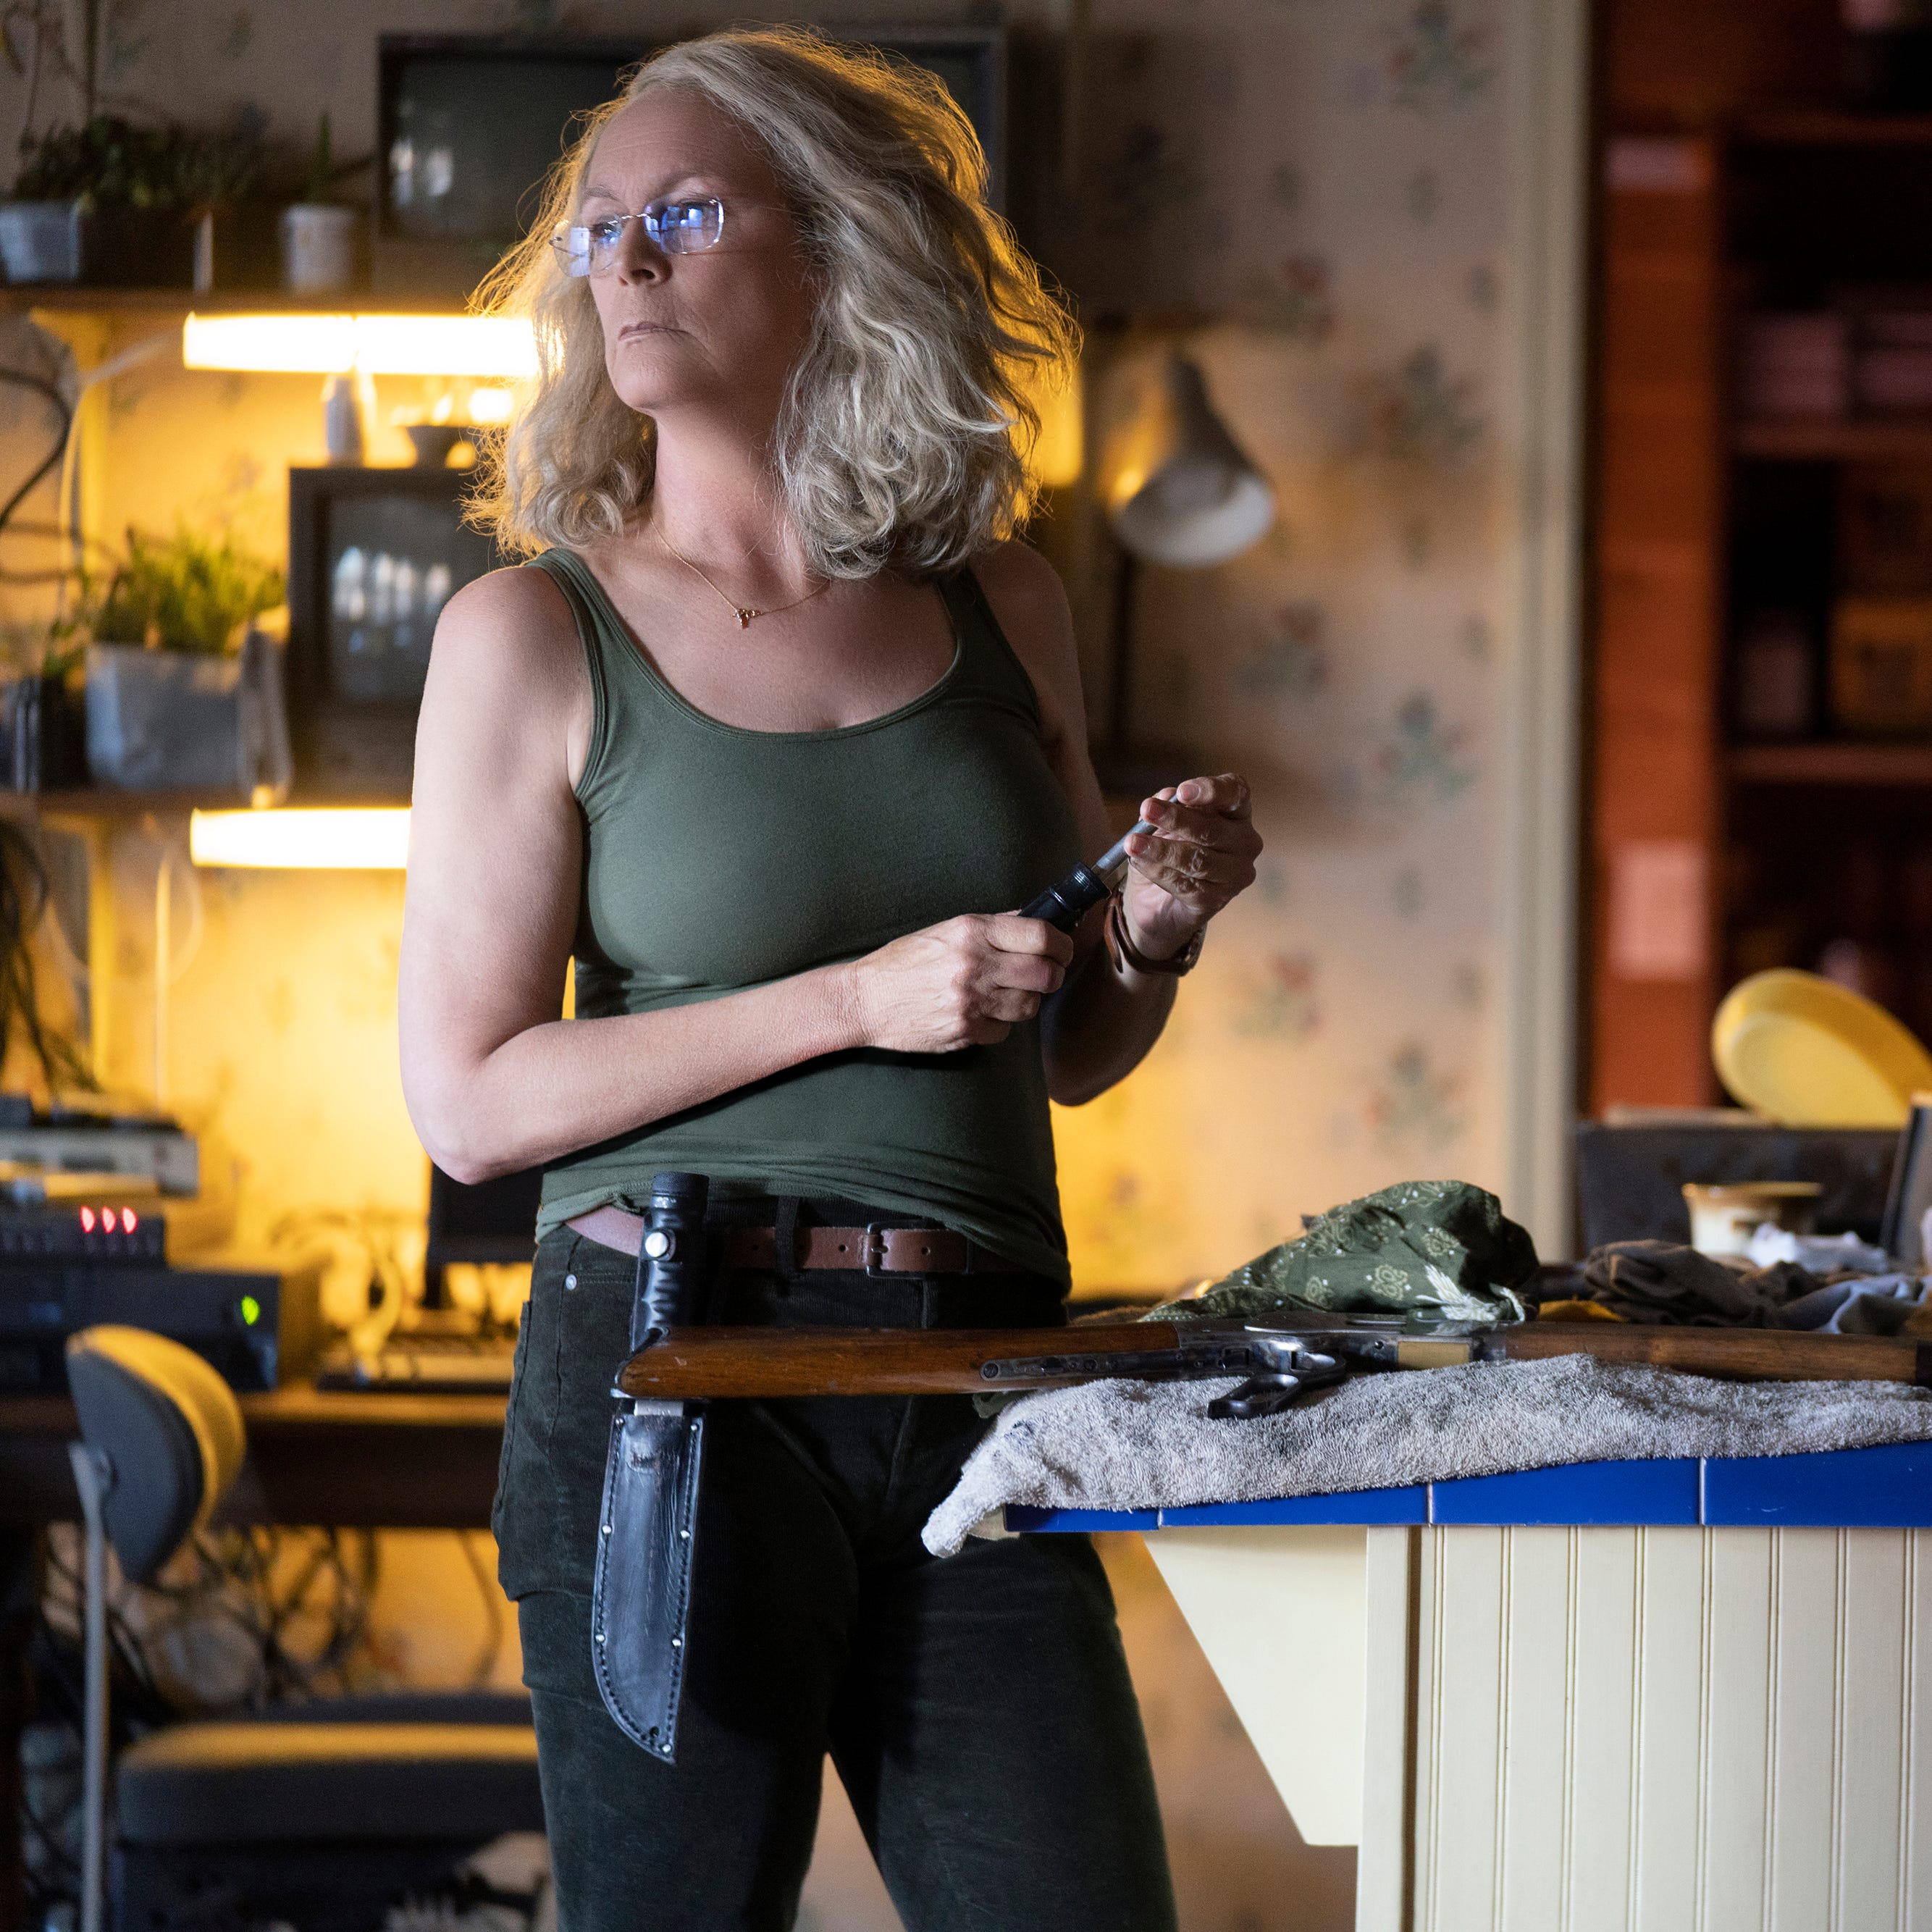 Review: Jamie Lee Curtis' rage fuels a worthy new 'Halloween' revamp with depth